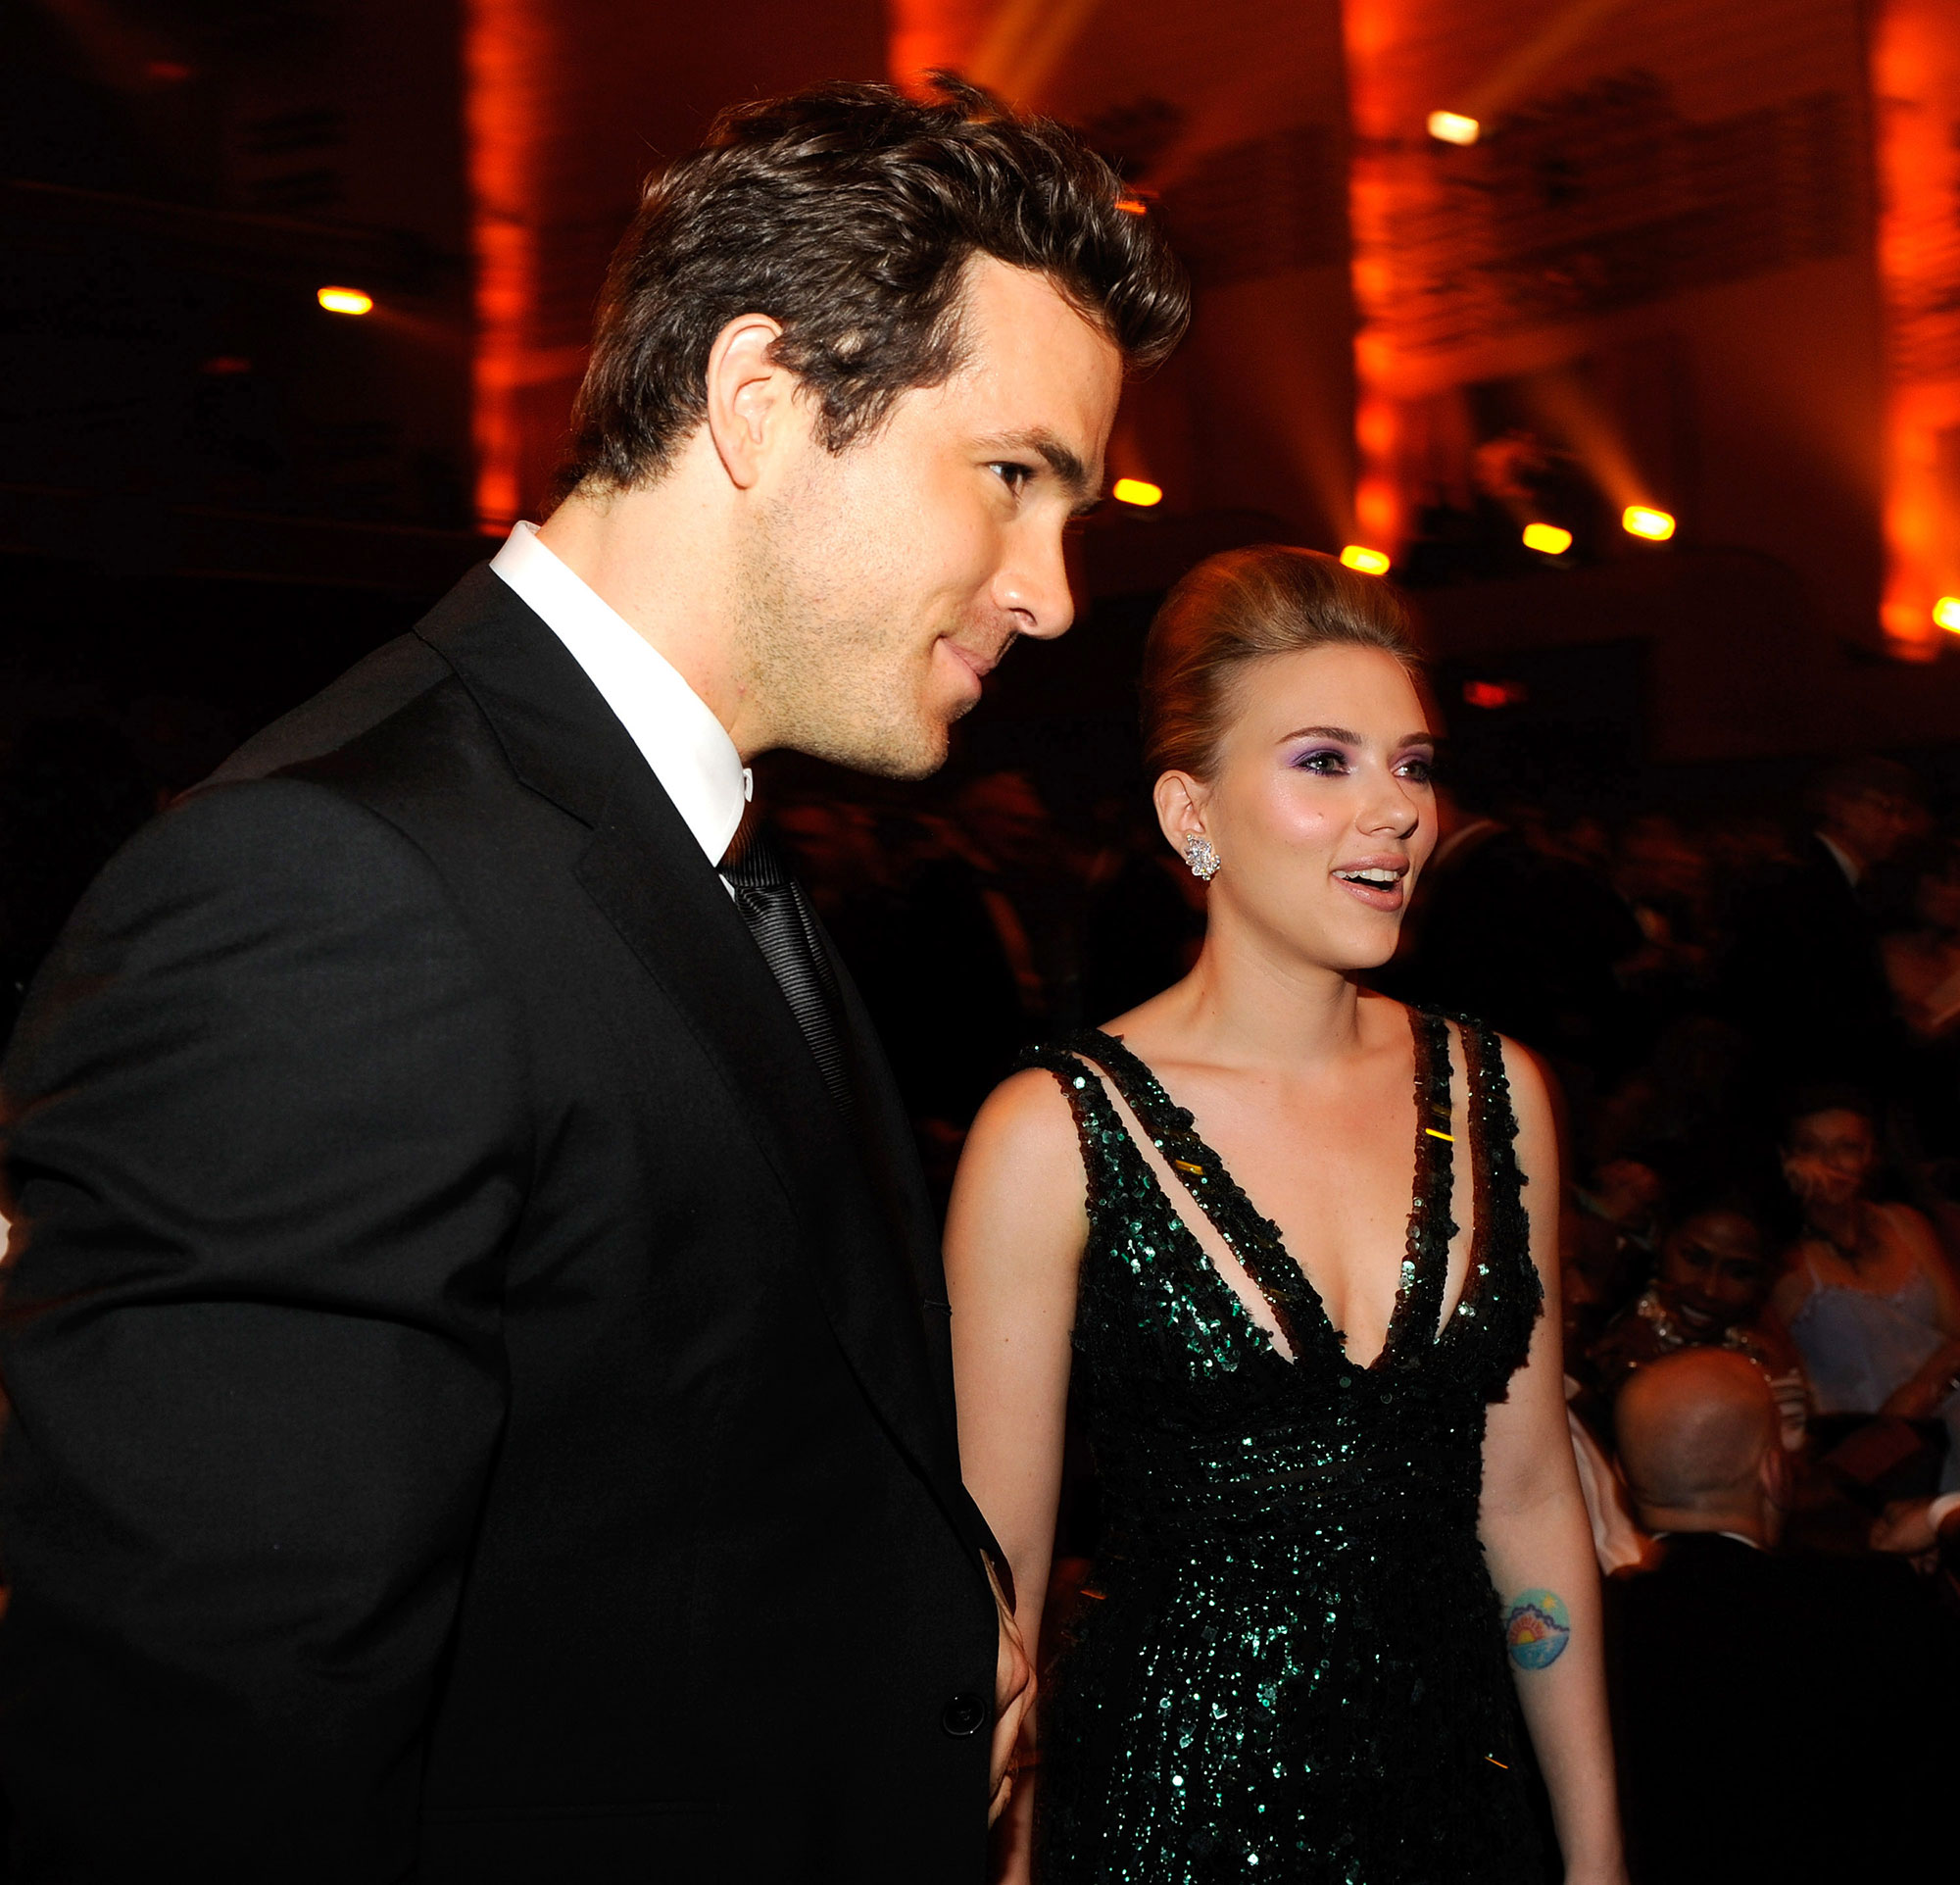 Celebrity Couples Who Got Engaged and Married in the Same Year - Engaged: May 2008 Married: September 27, 2008 Status: Divorced in July 2011; Reynolds is now married to Blake Lively , with whom he shares daughters James and Inez, while Johansson is dating Colin Jost and shares daughter Rose with second ex-husband Romain Dauriac